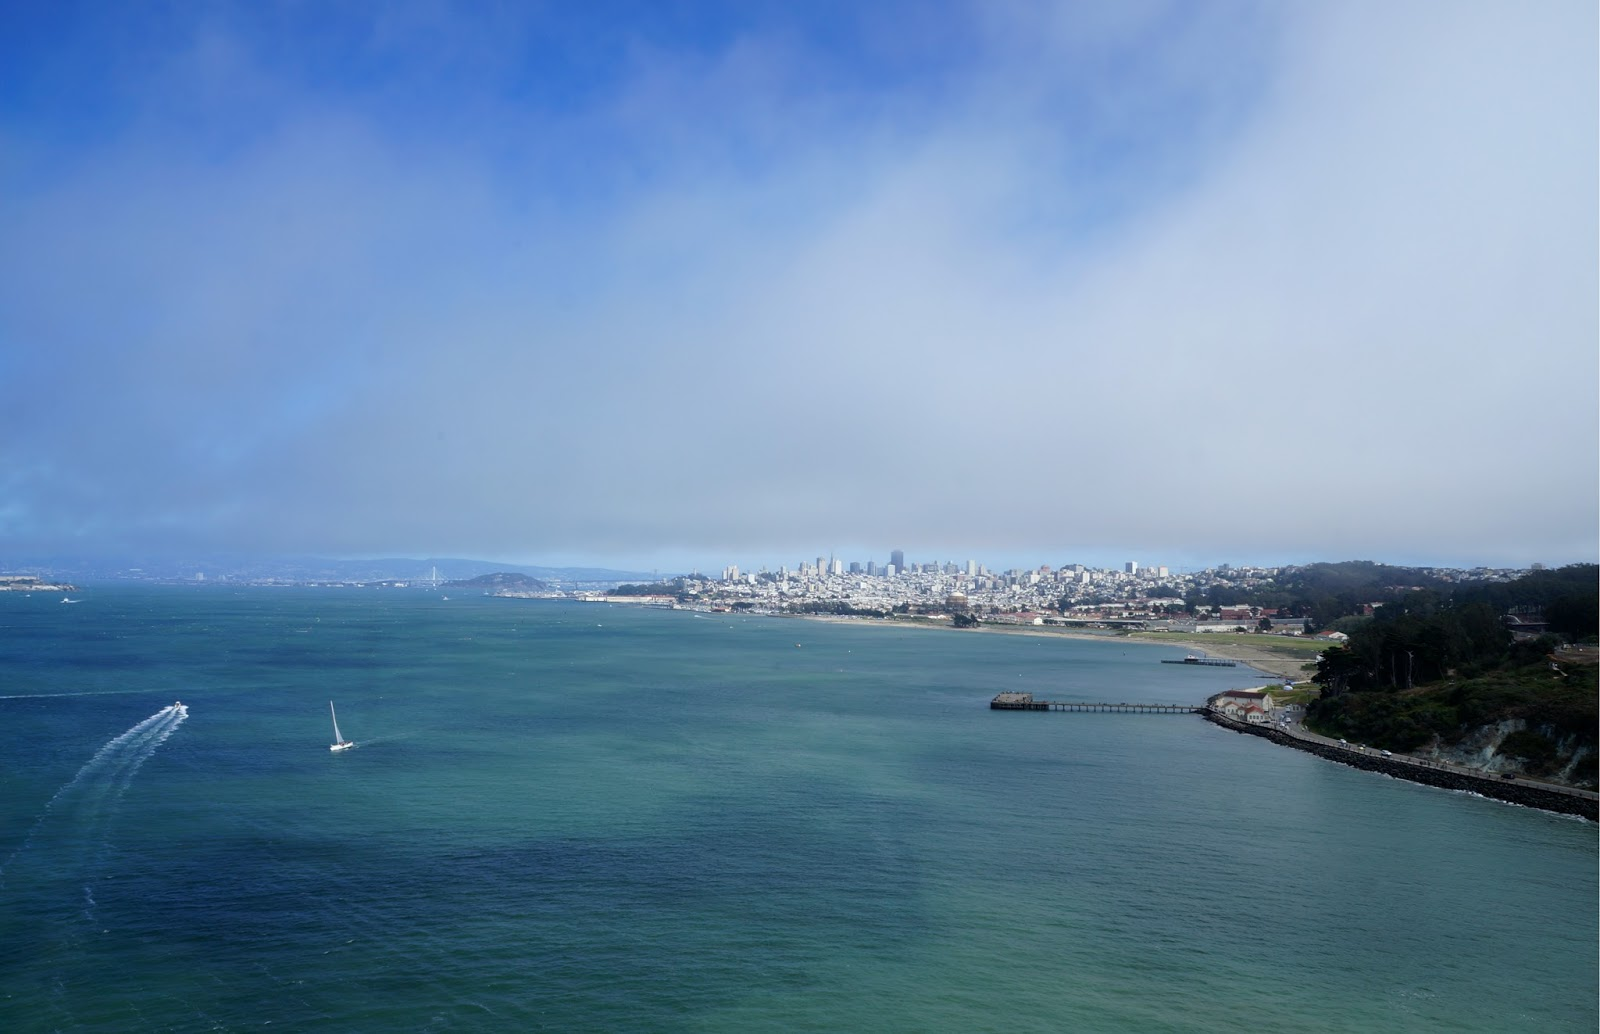 view on San Francisco from Golden Gate Bridge